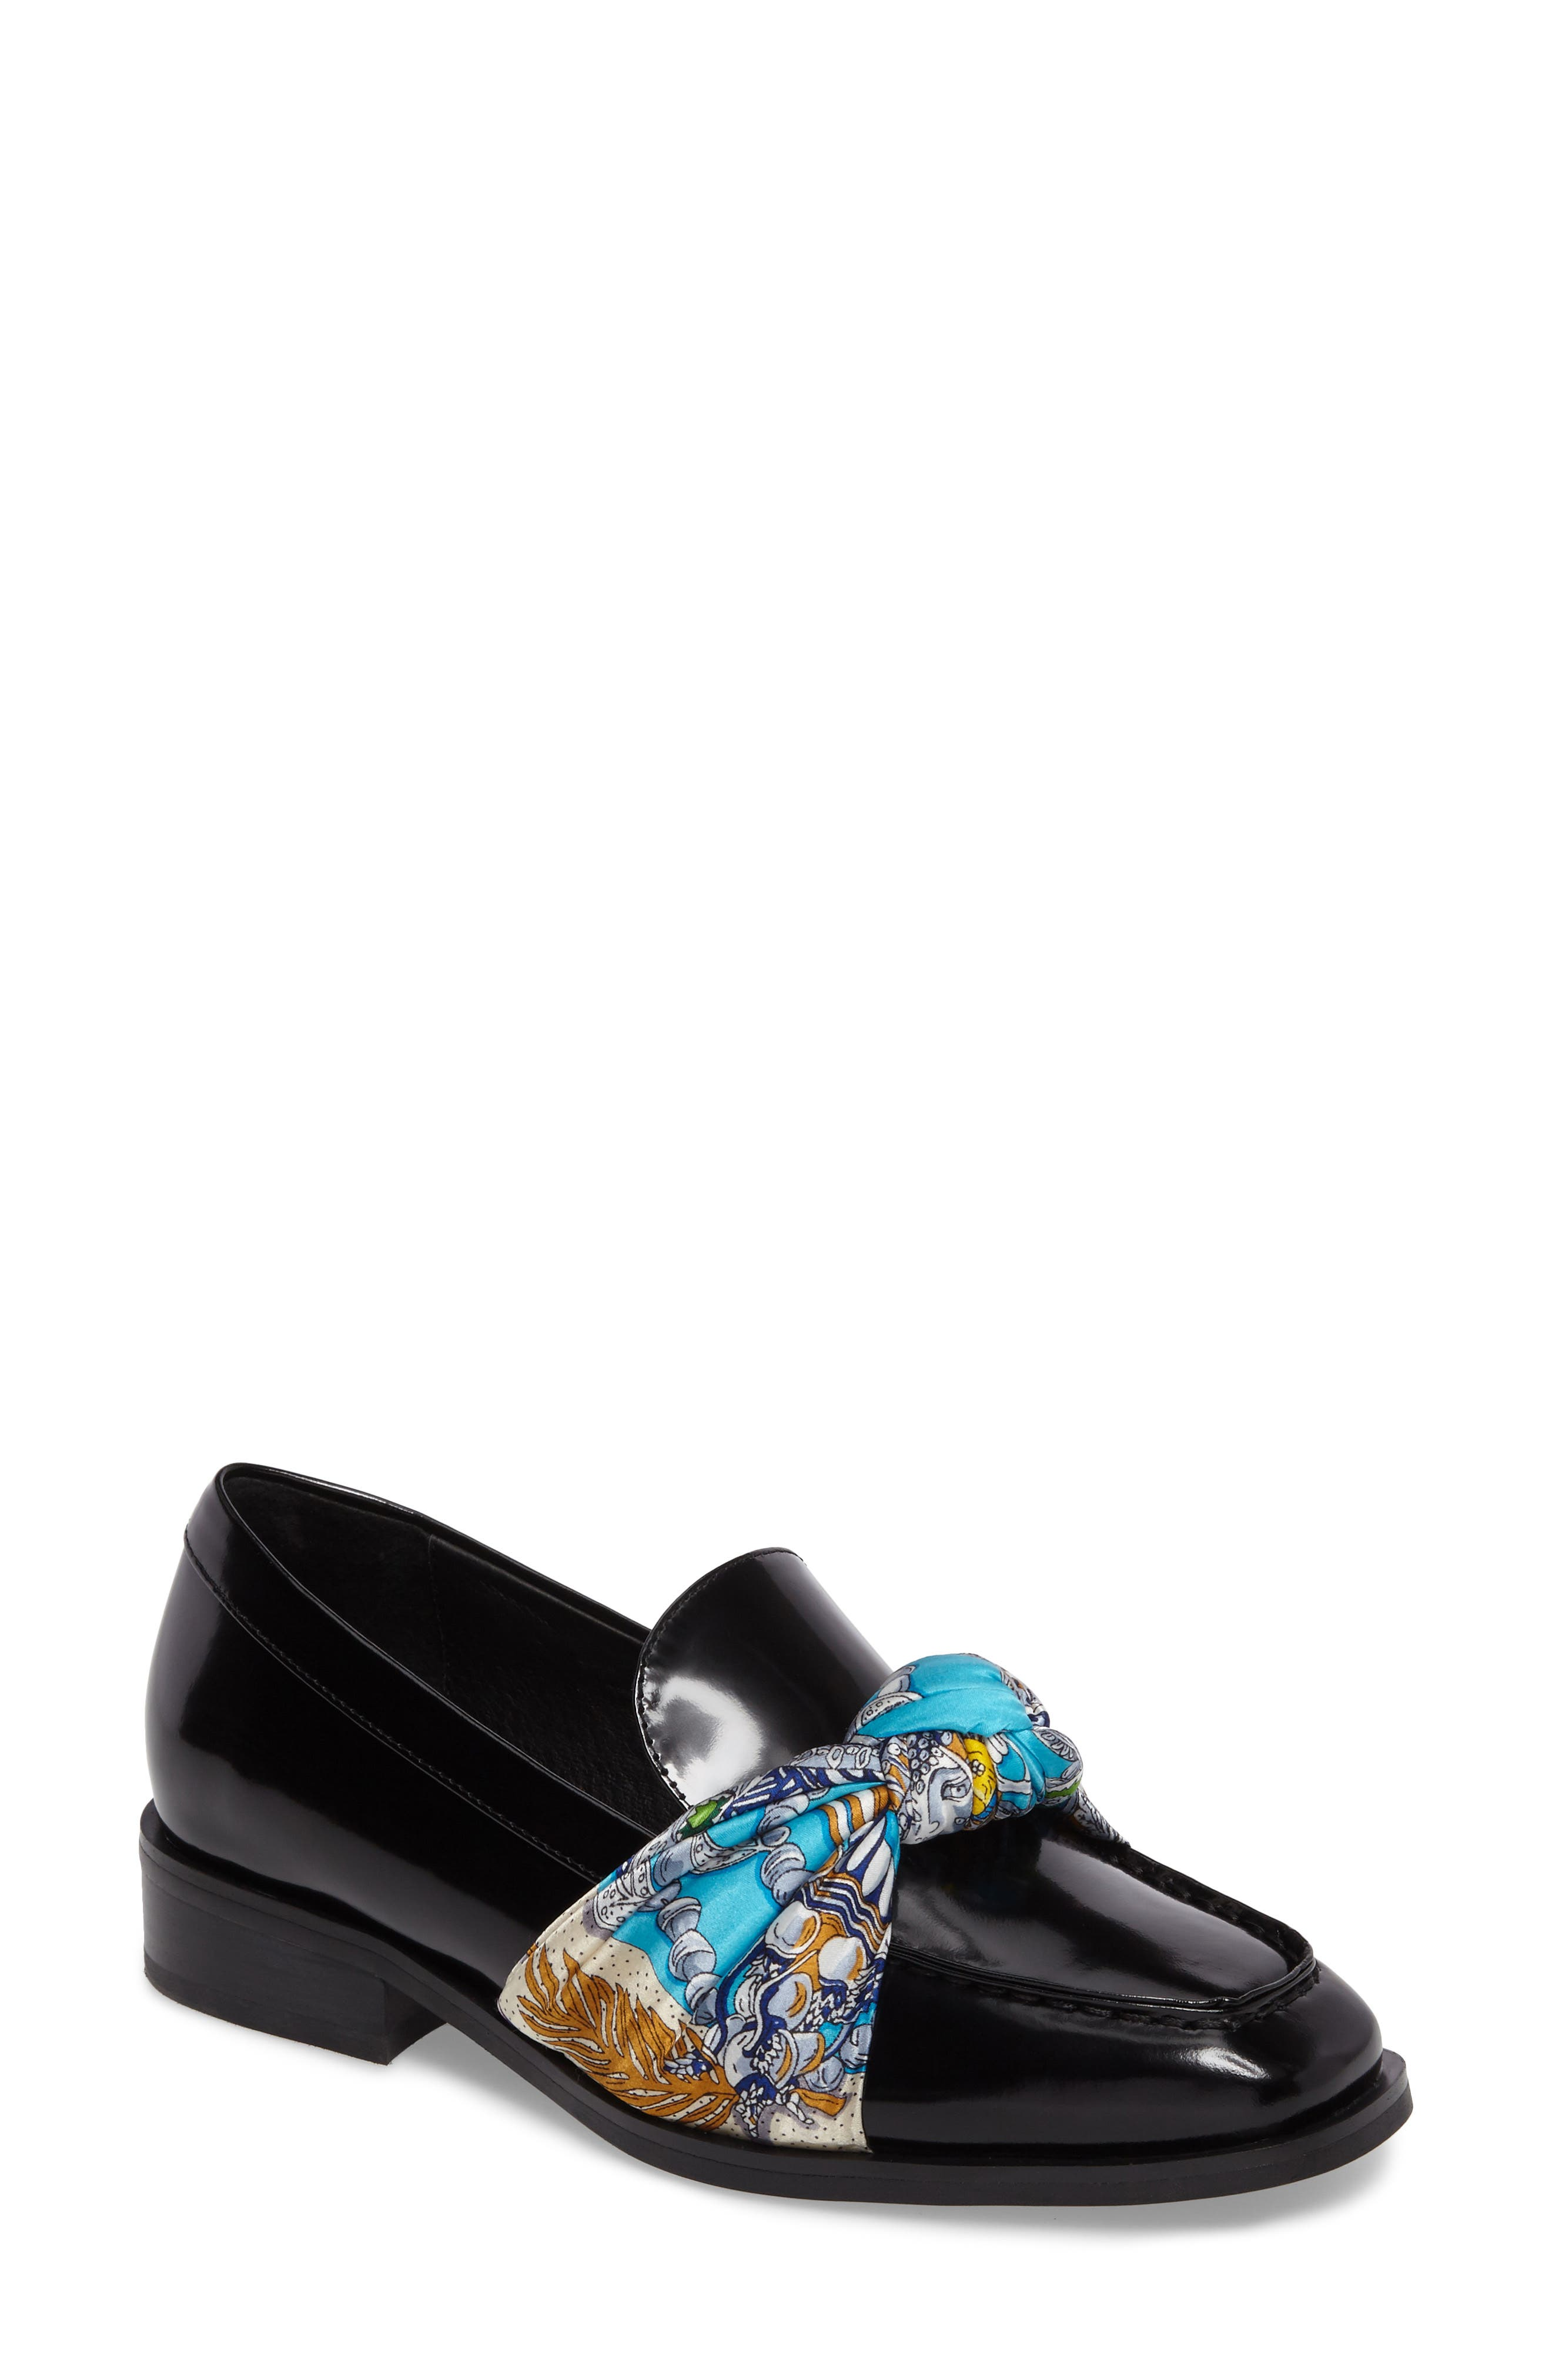 Bollero Loafer,                         Main,                         color, Black Box/ Blue Gold Print